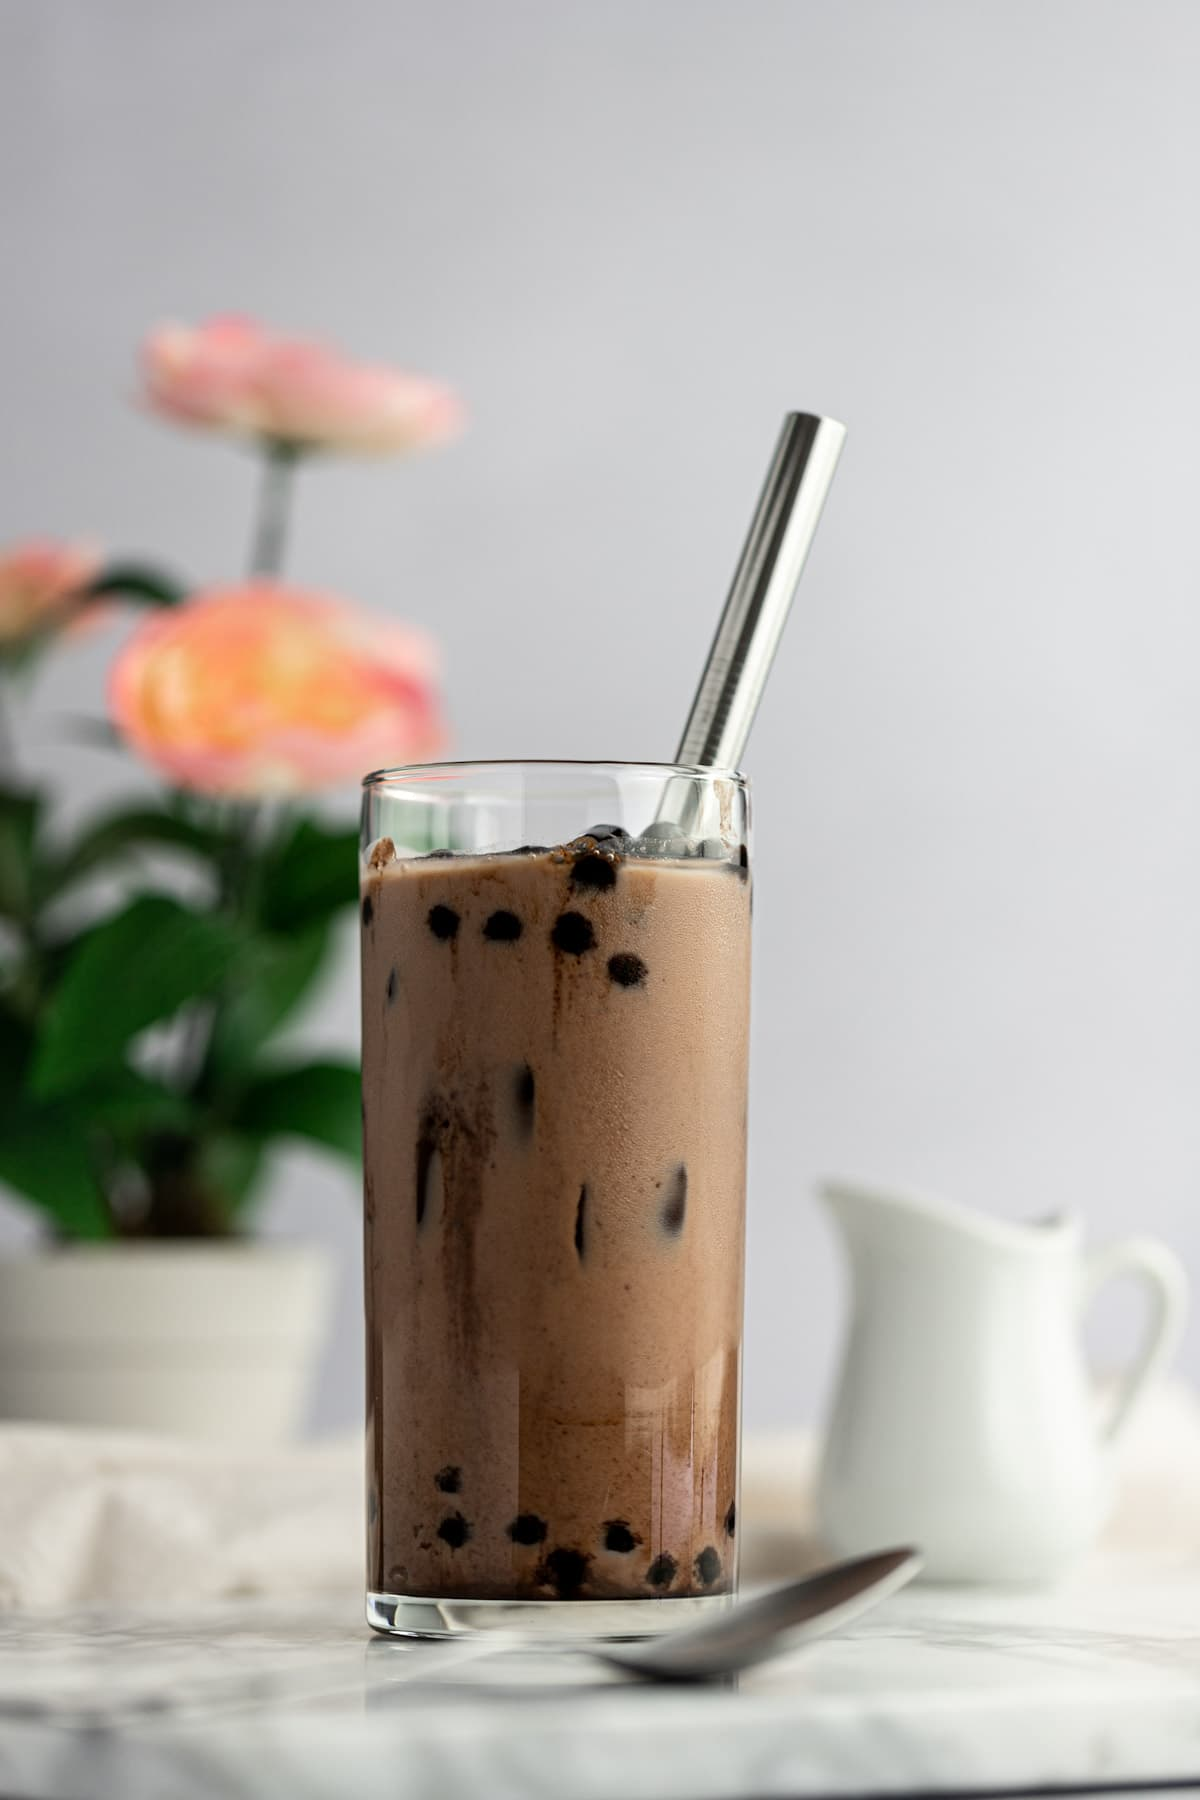 Up close photo of a glass of chocolate milk tea, filled with ice and boba, with a spoon in front of the glass, and a small creamer behind, on a white background.